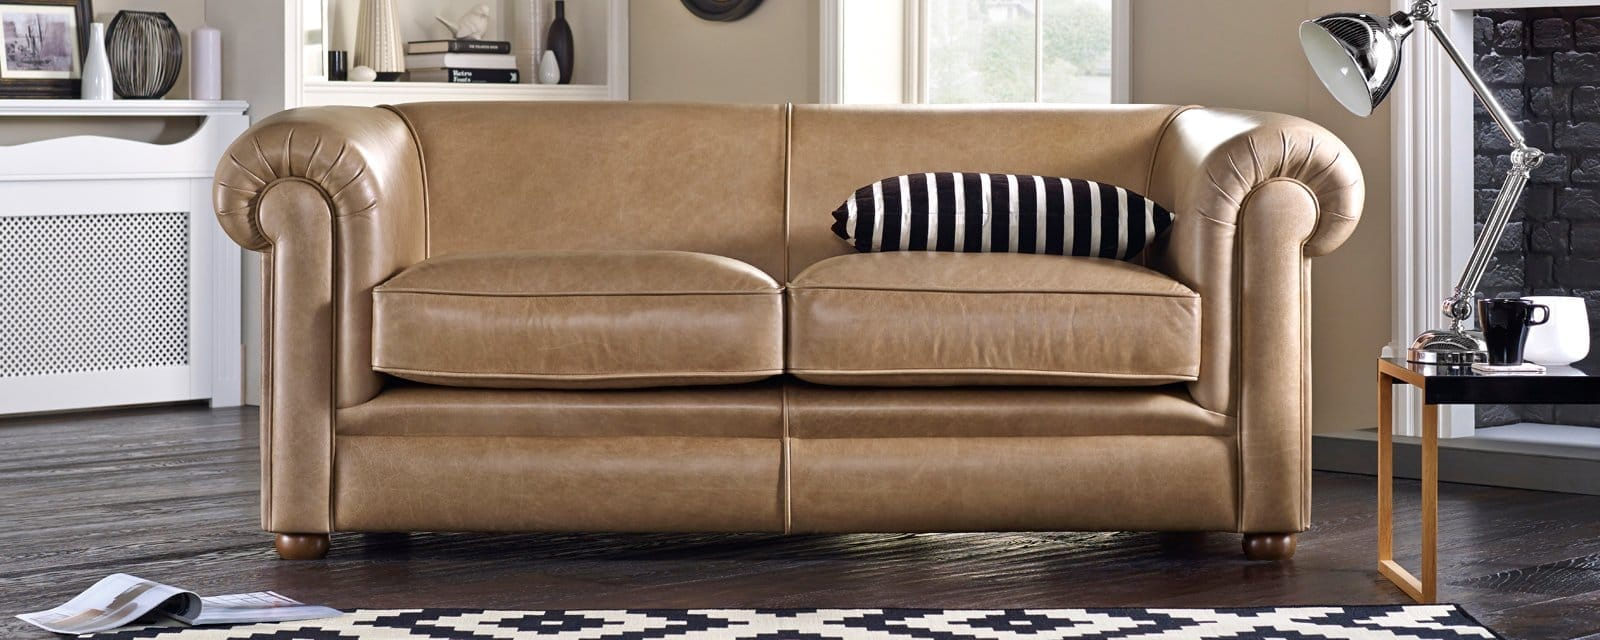 hampton 3 seater sofa bed from sofas by saxon uk. Black Bedroom Furniture Sets. Home Design Ideas